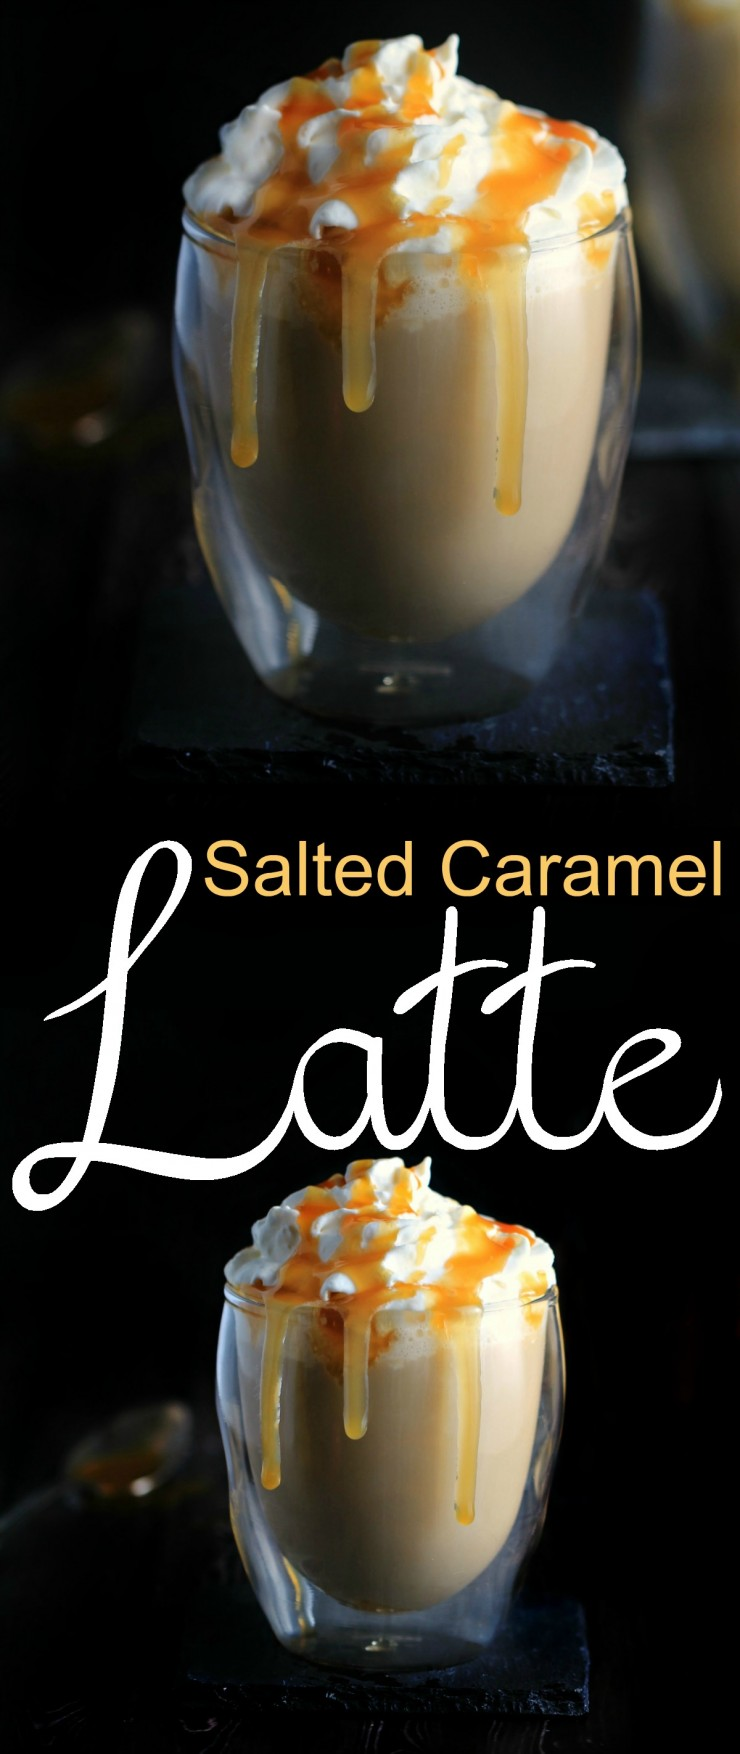 Salted Caramel is one of my favourite fall flavours and this Salted Caramel Latte is perfectly sweet with just the right touch of savoury.